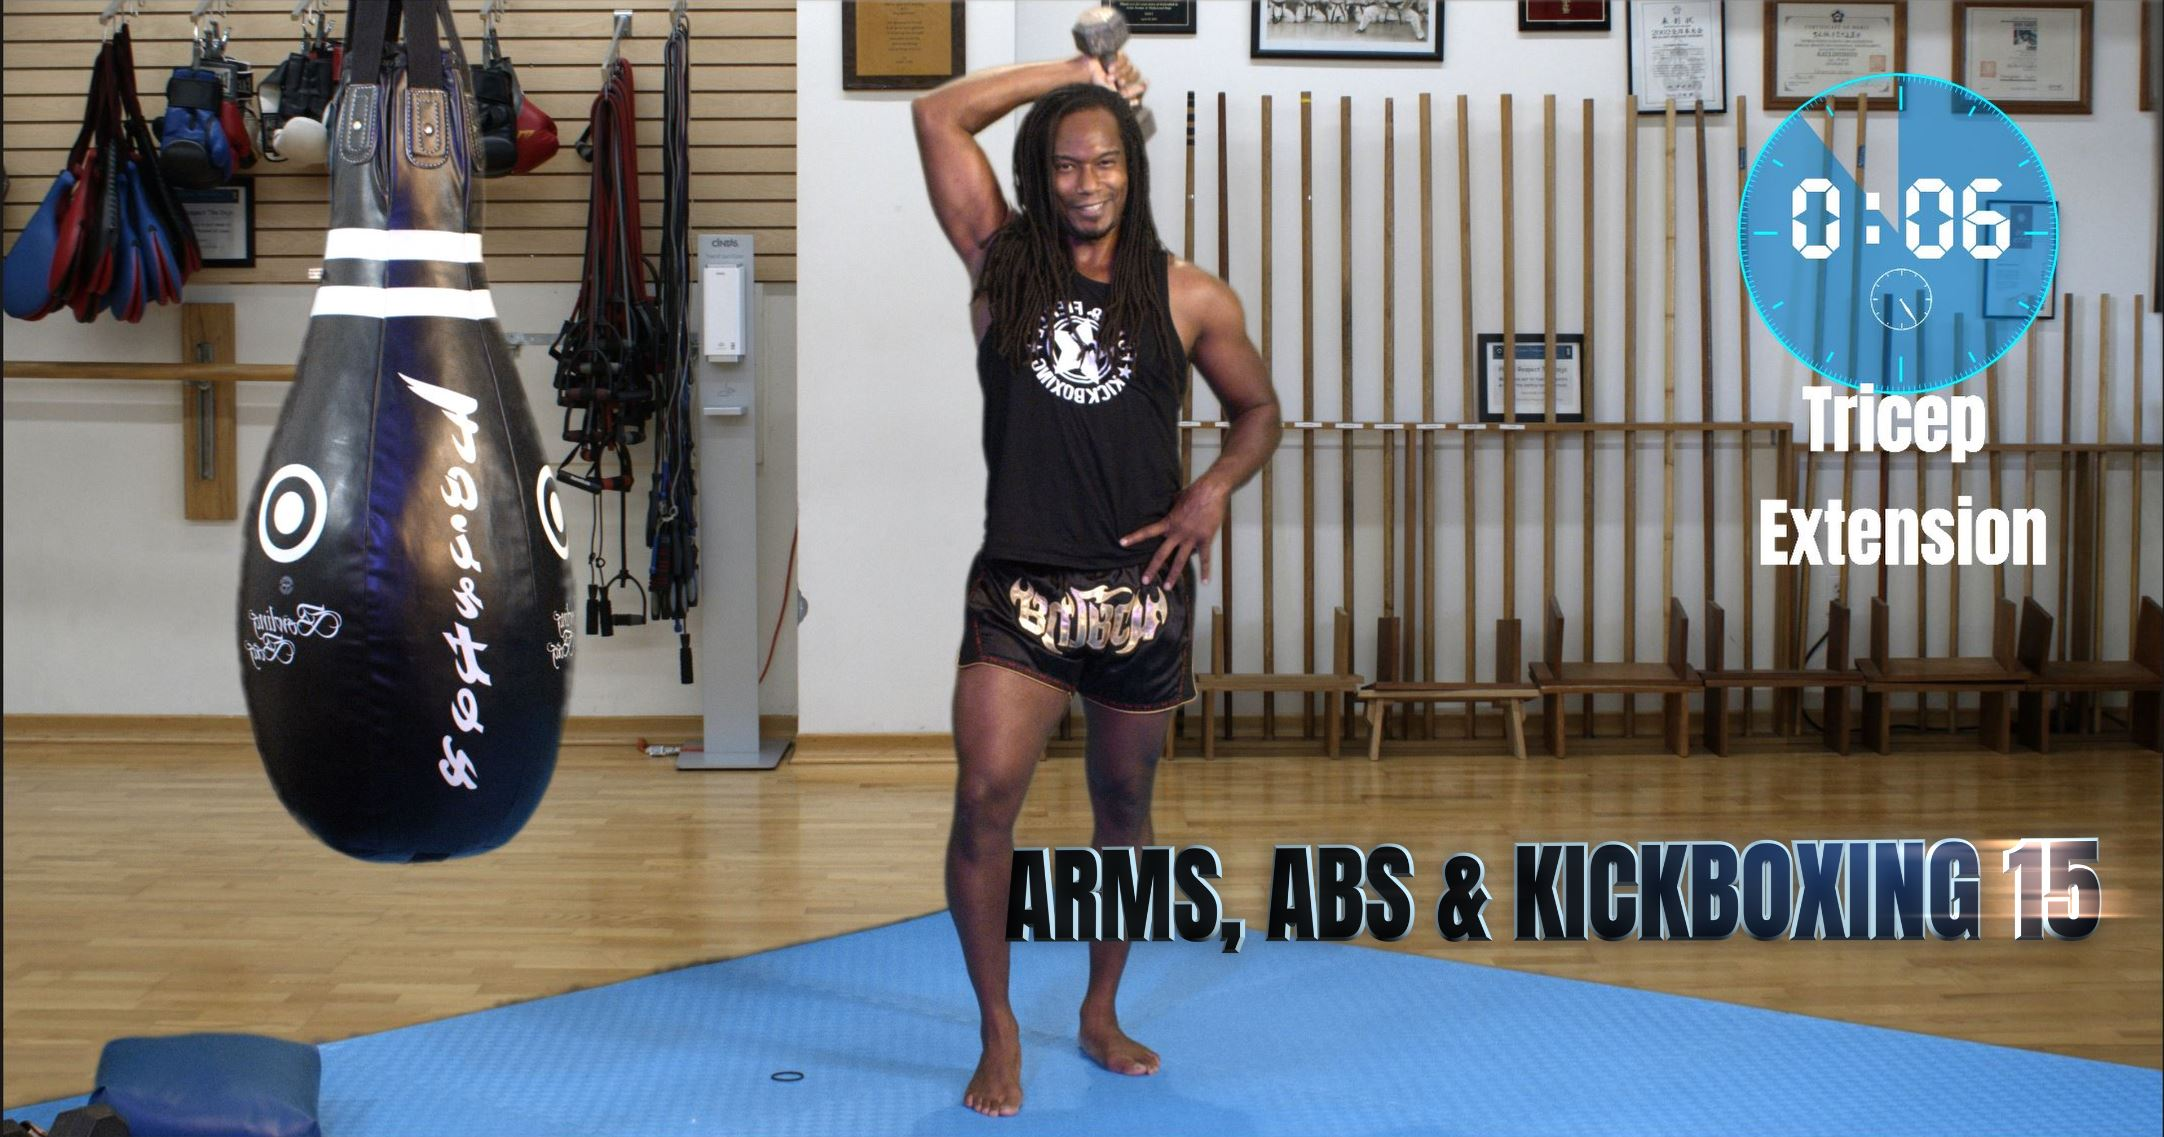 Arms, Abs & Kickboxing 15